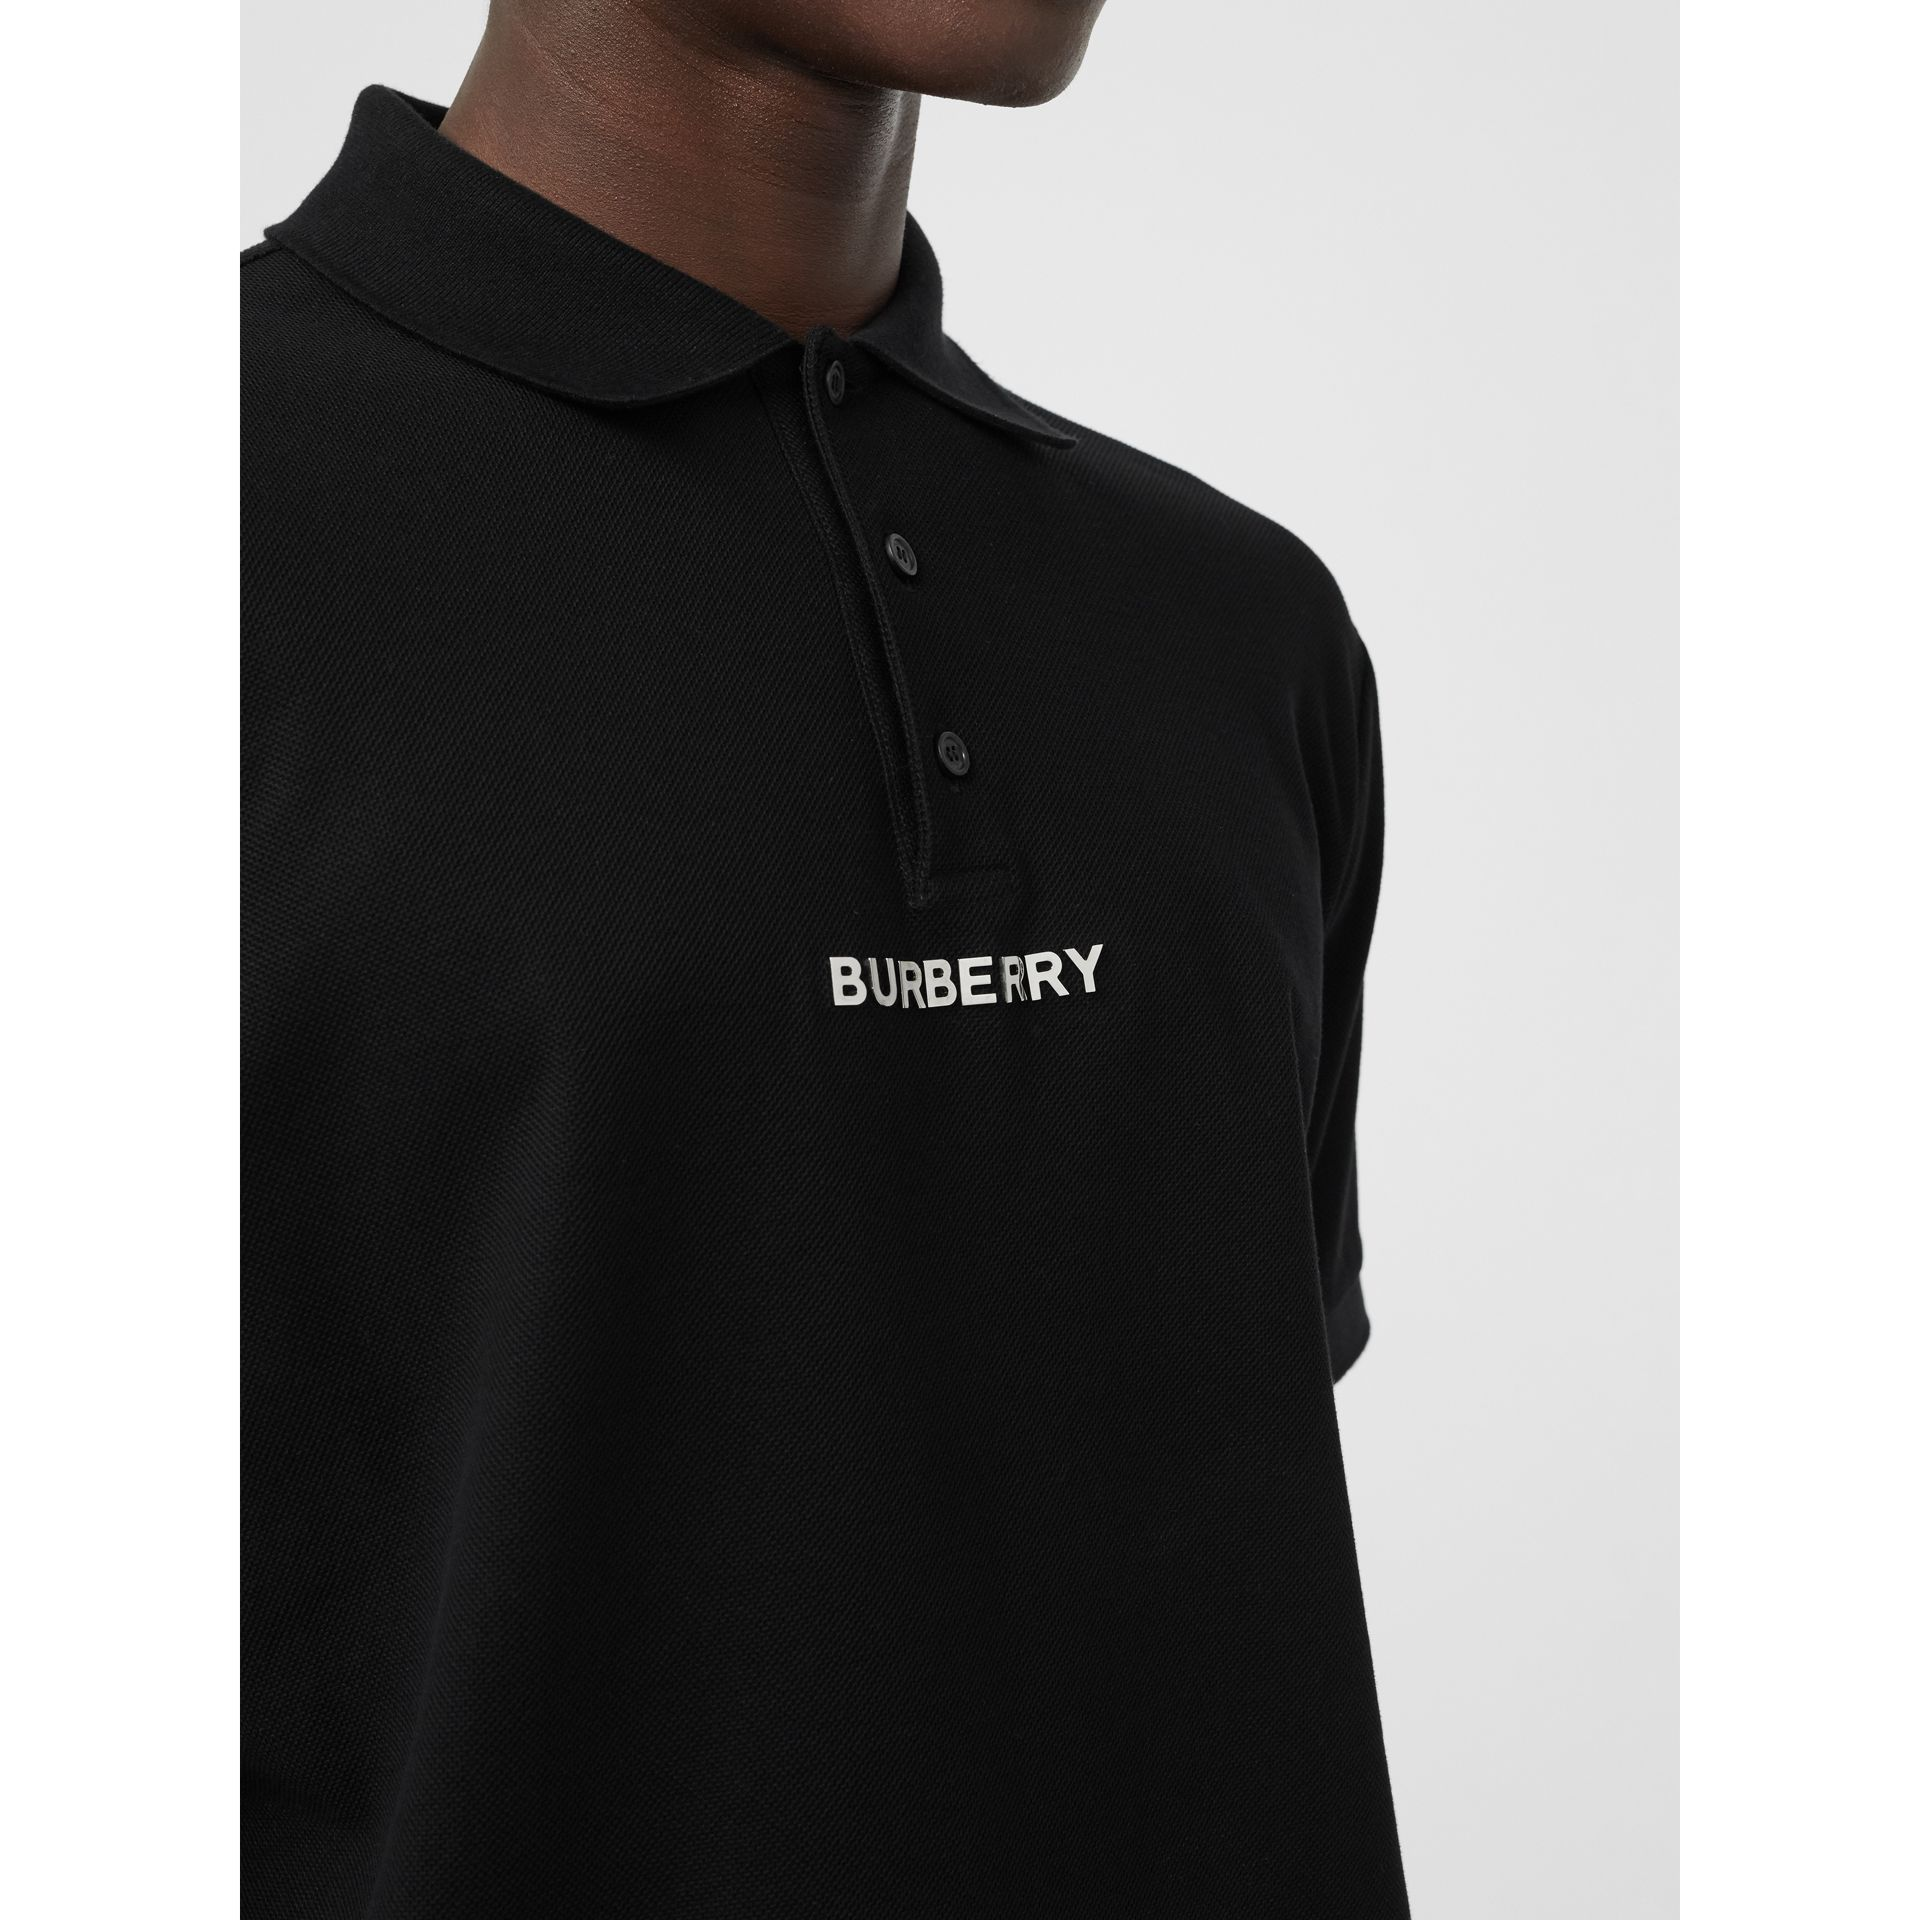 Embellished Logo Polo Shirt in Black - Men | Burberry United States - gallery image 1